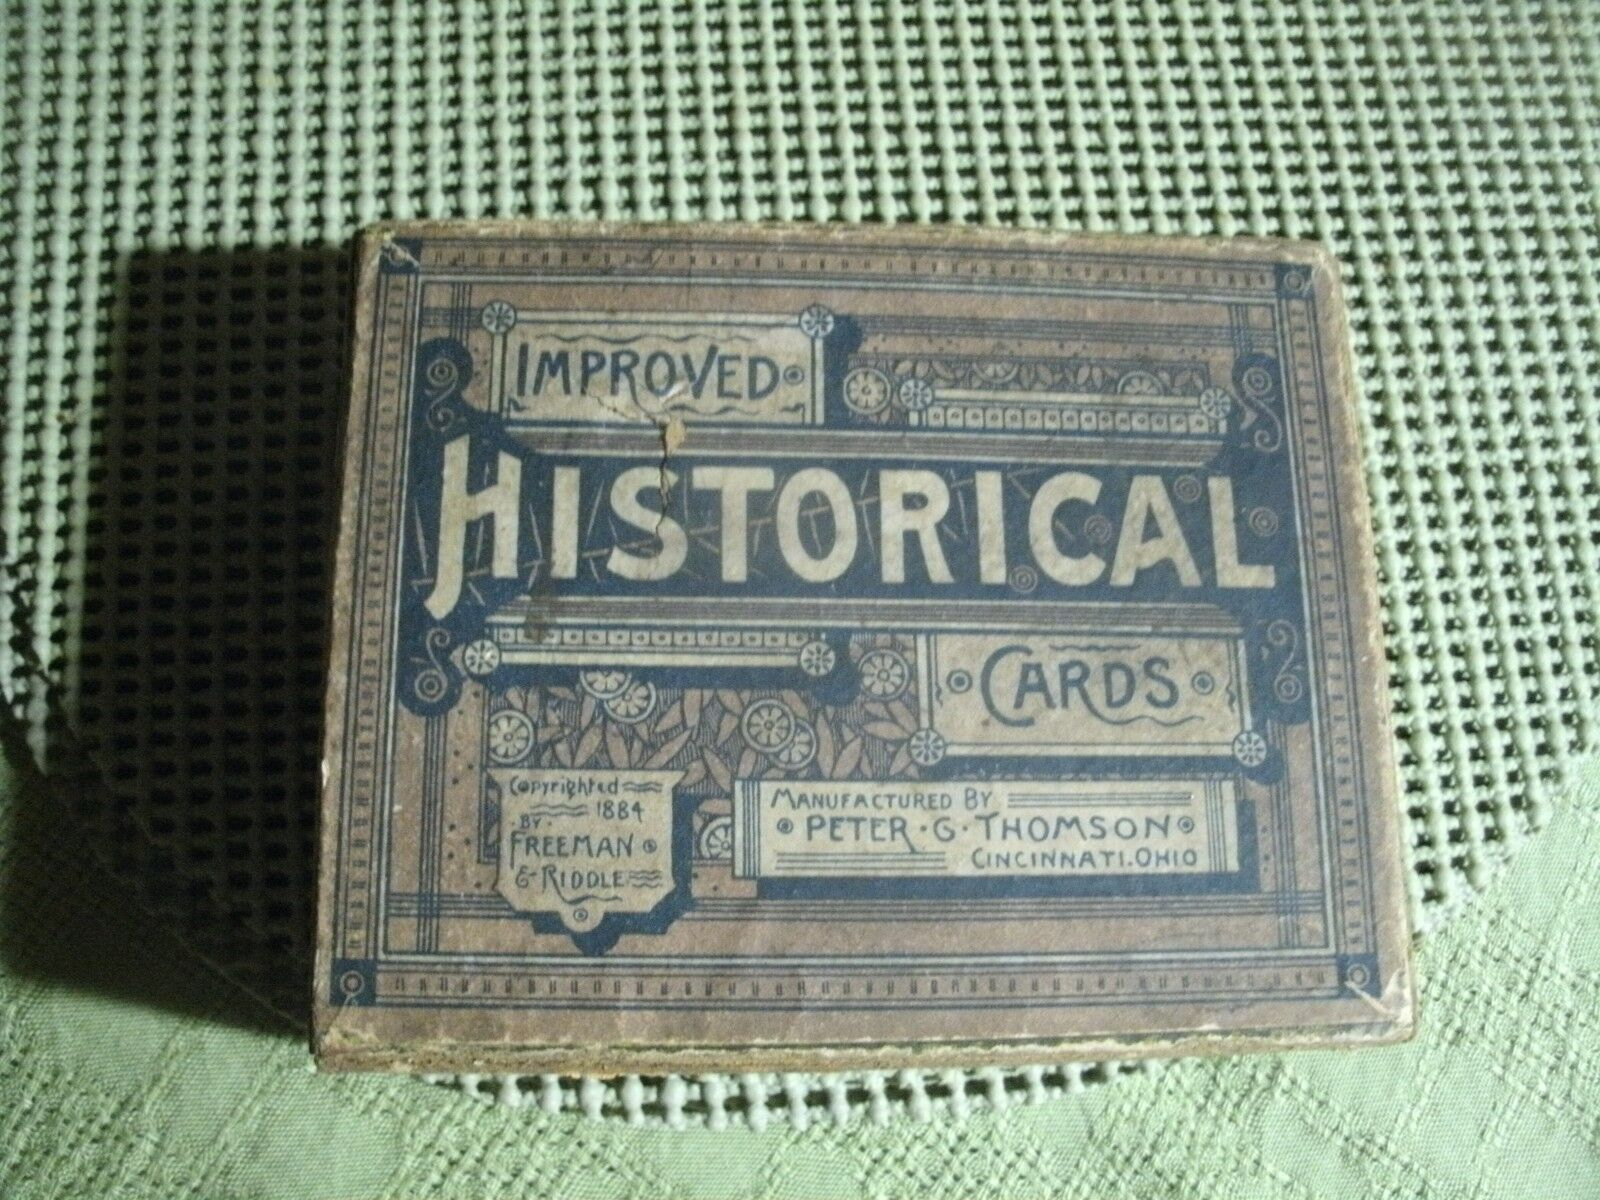 2 W    Antique Freeman & Riddle Improved Historical Cards Game & Box 1884